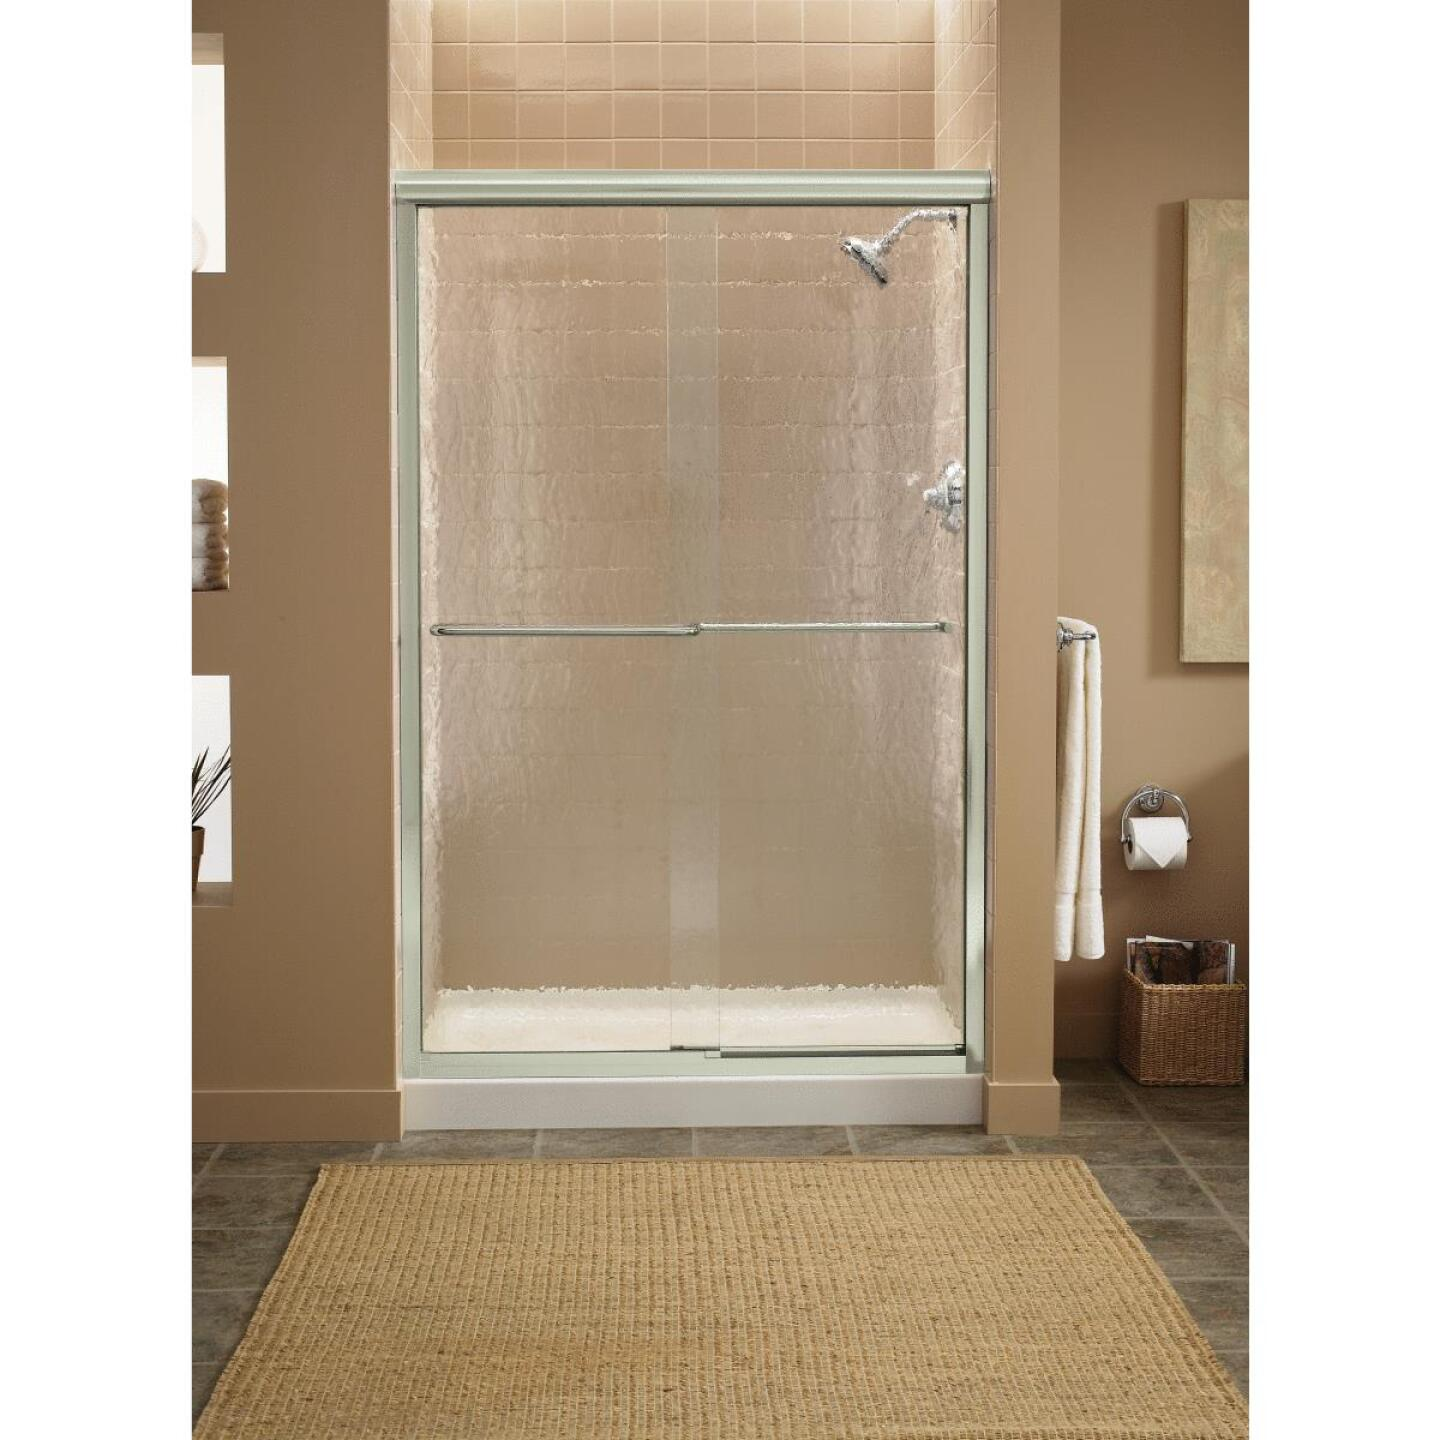 Sterling Finesse 47-5/8 In. W. X 70-5/16 In. H. Nickel Frameless Clear Sliding Shower Door Image 2